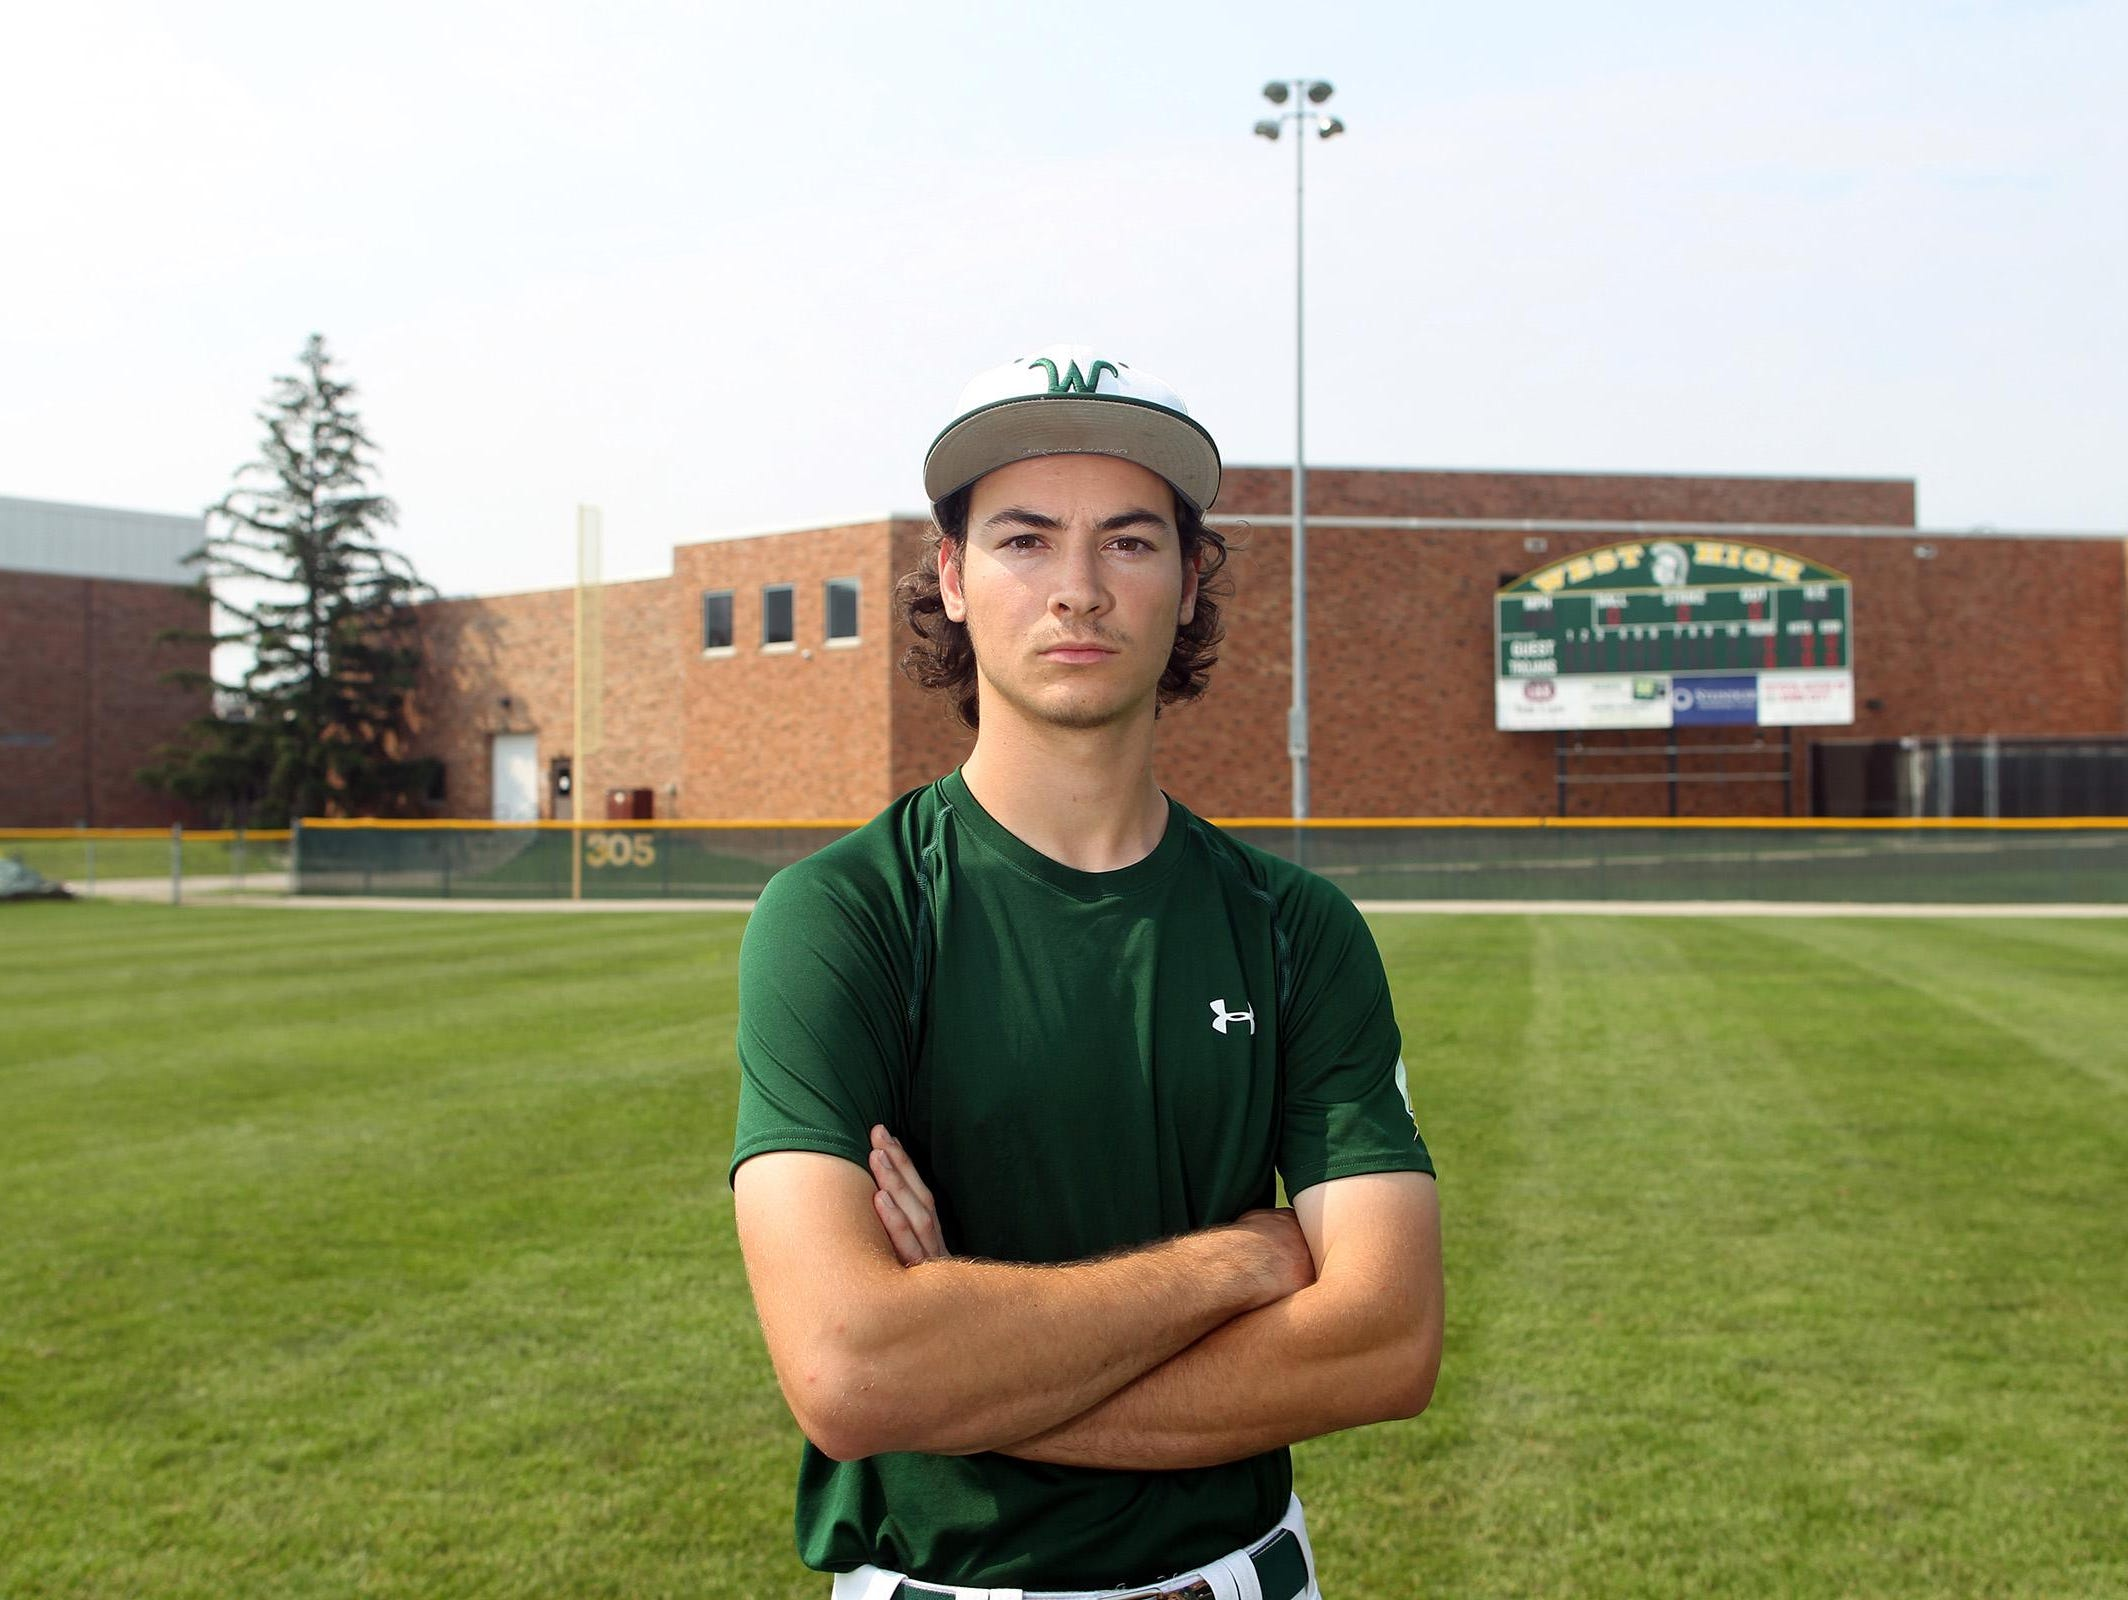 West High senior Kevin DeLaney poses for a photo before practice on Wednesday, July 1, 2015.